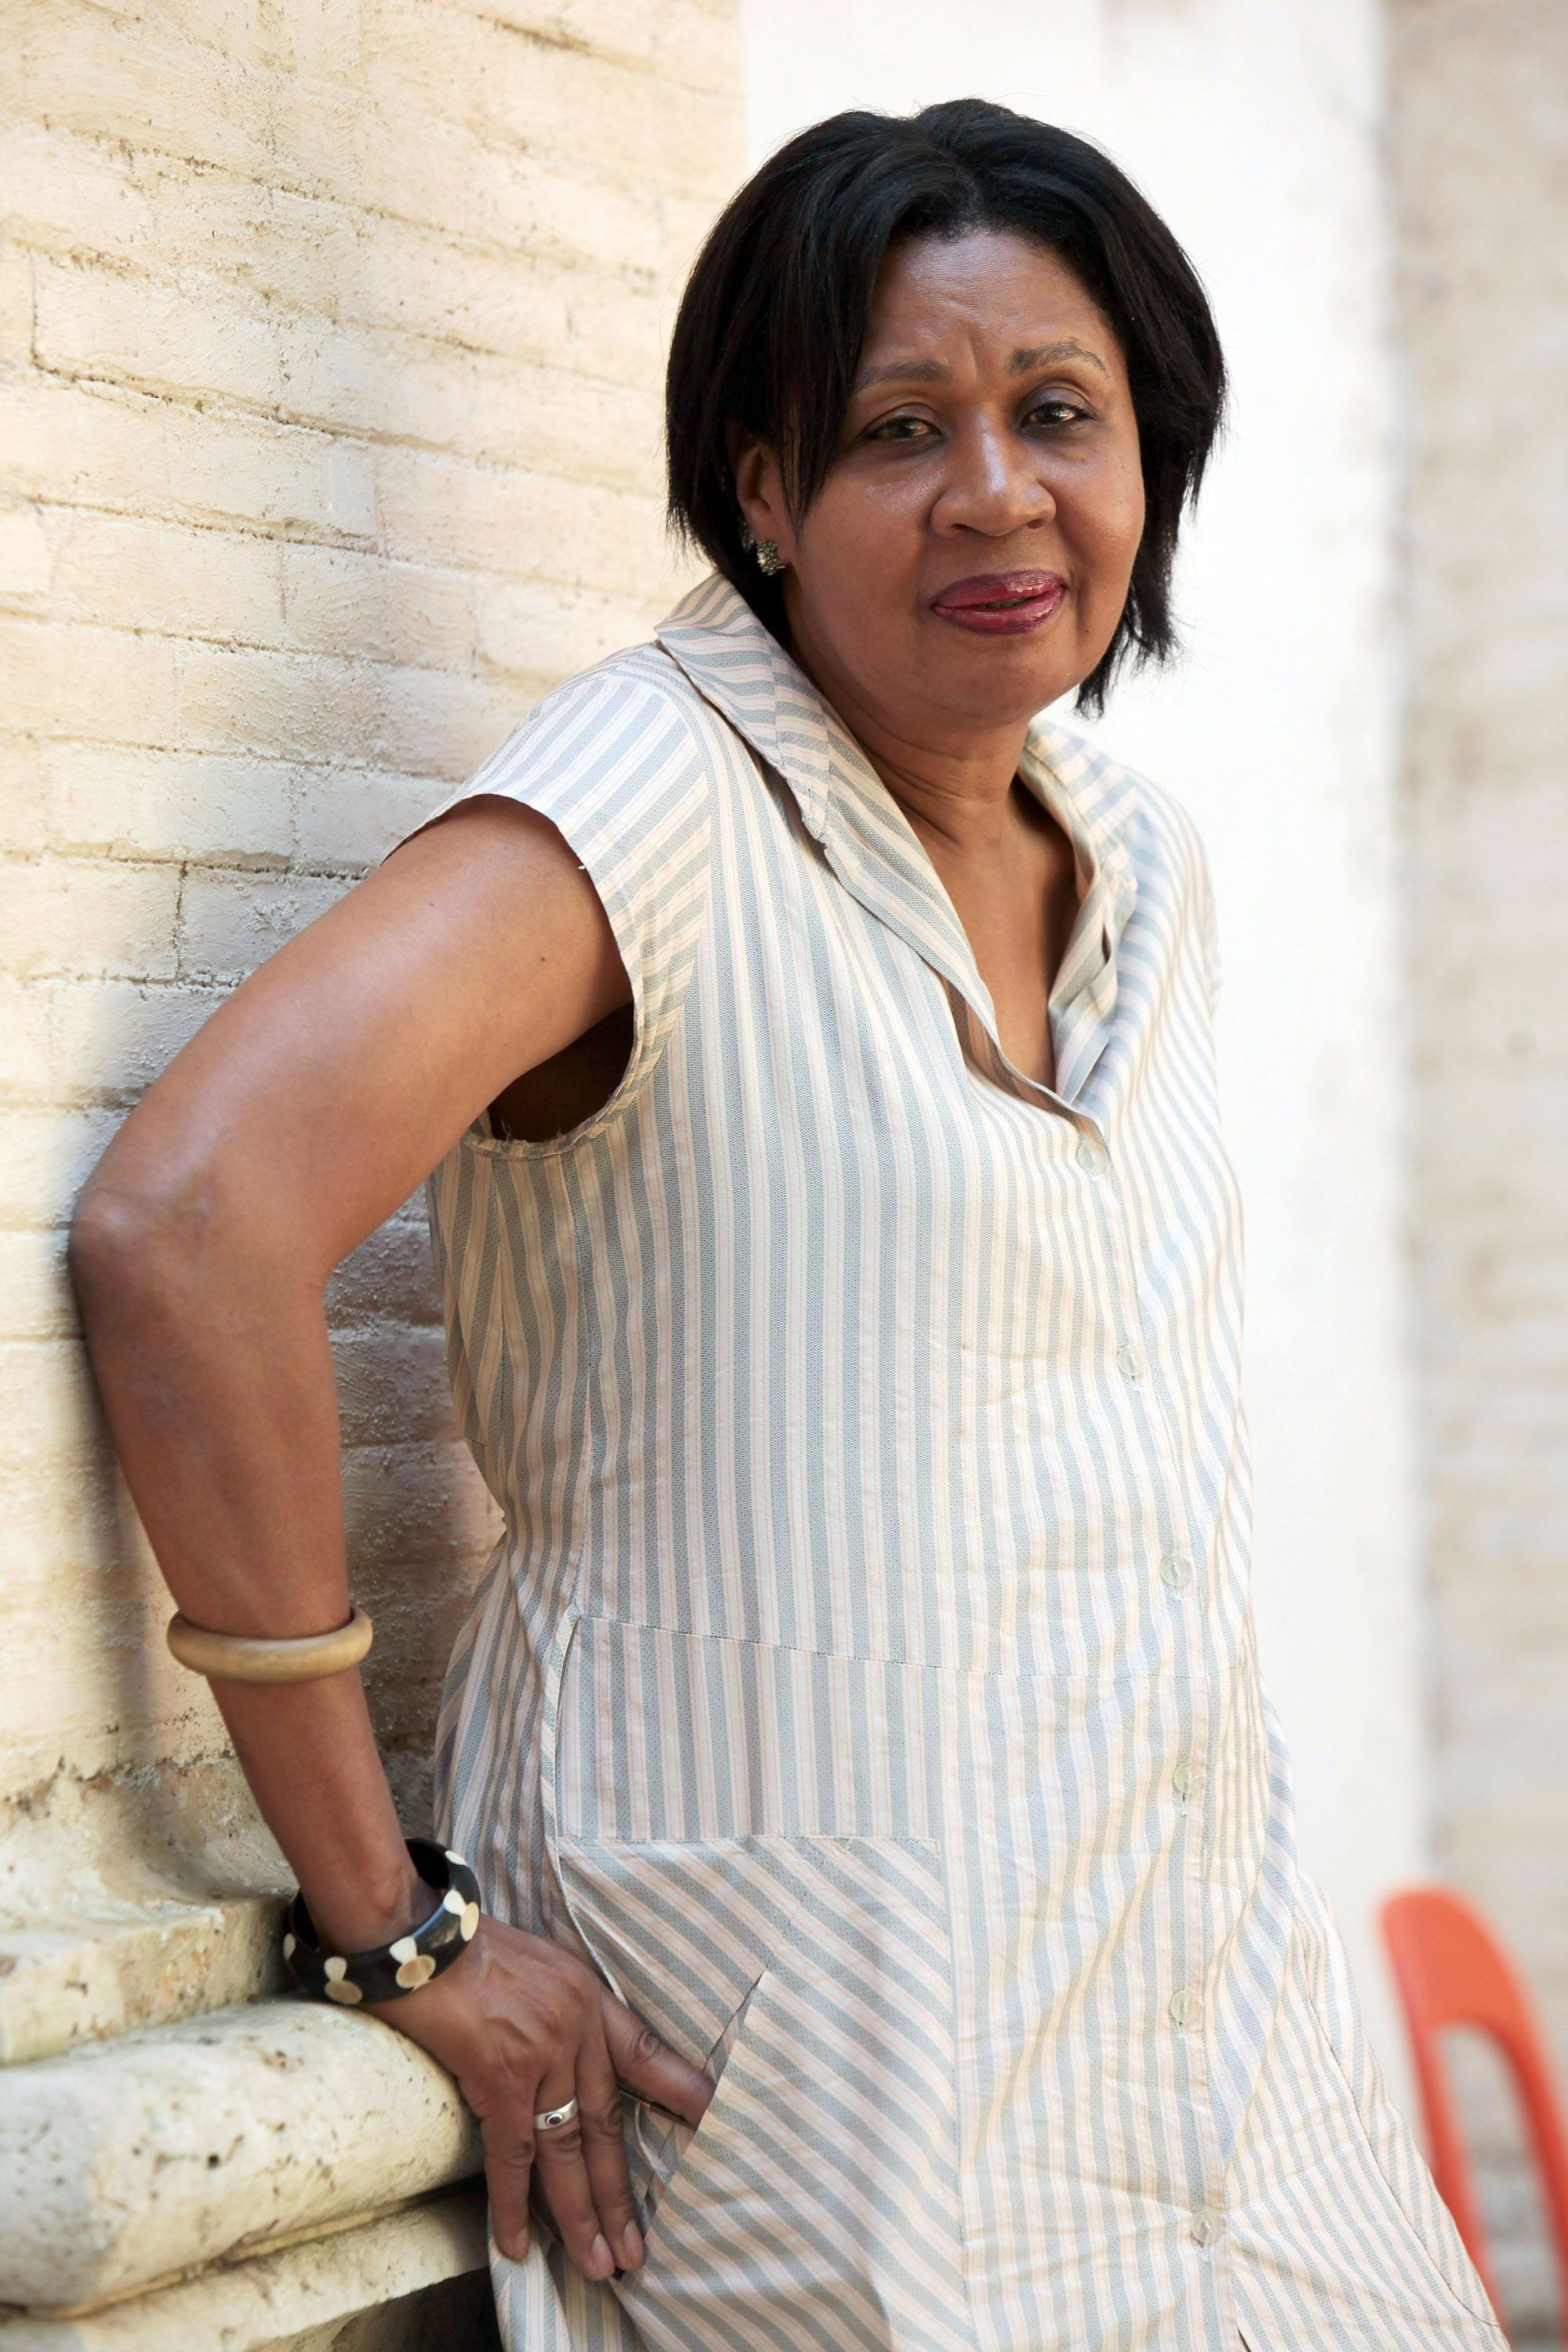 girl by jamaica kincaid essay Jamaica kincaid- girl essays the poem girl by author jamaica kincaid shows love and family togetherness by creating microcosmic images of western caribbean familial practices and imbedding them in a seemingly incomprehensible text.